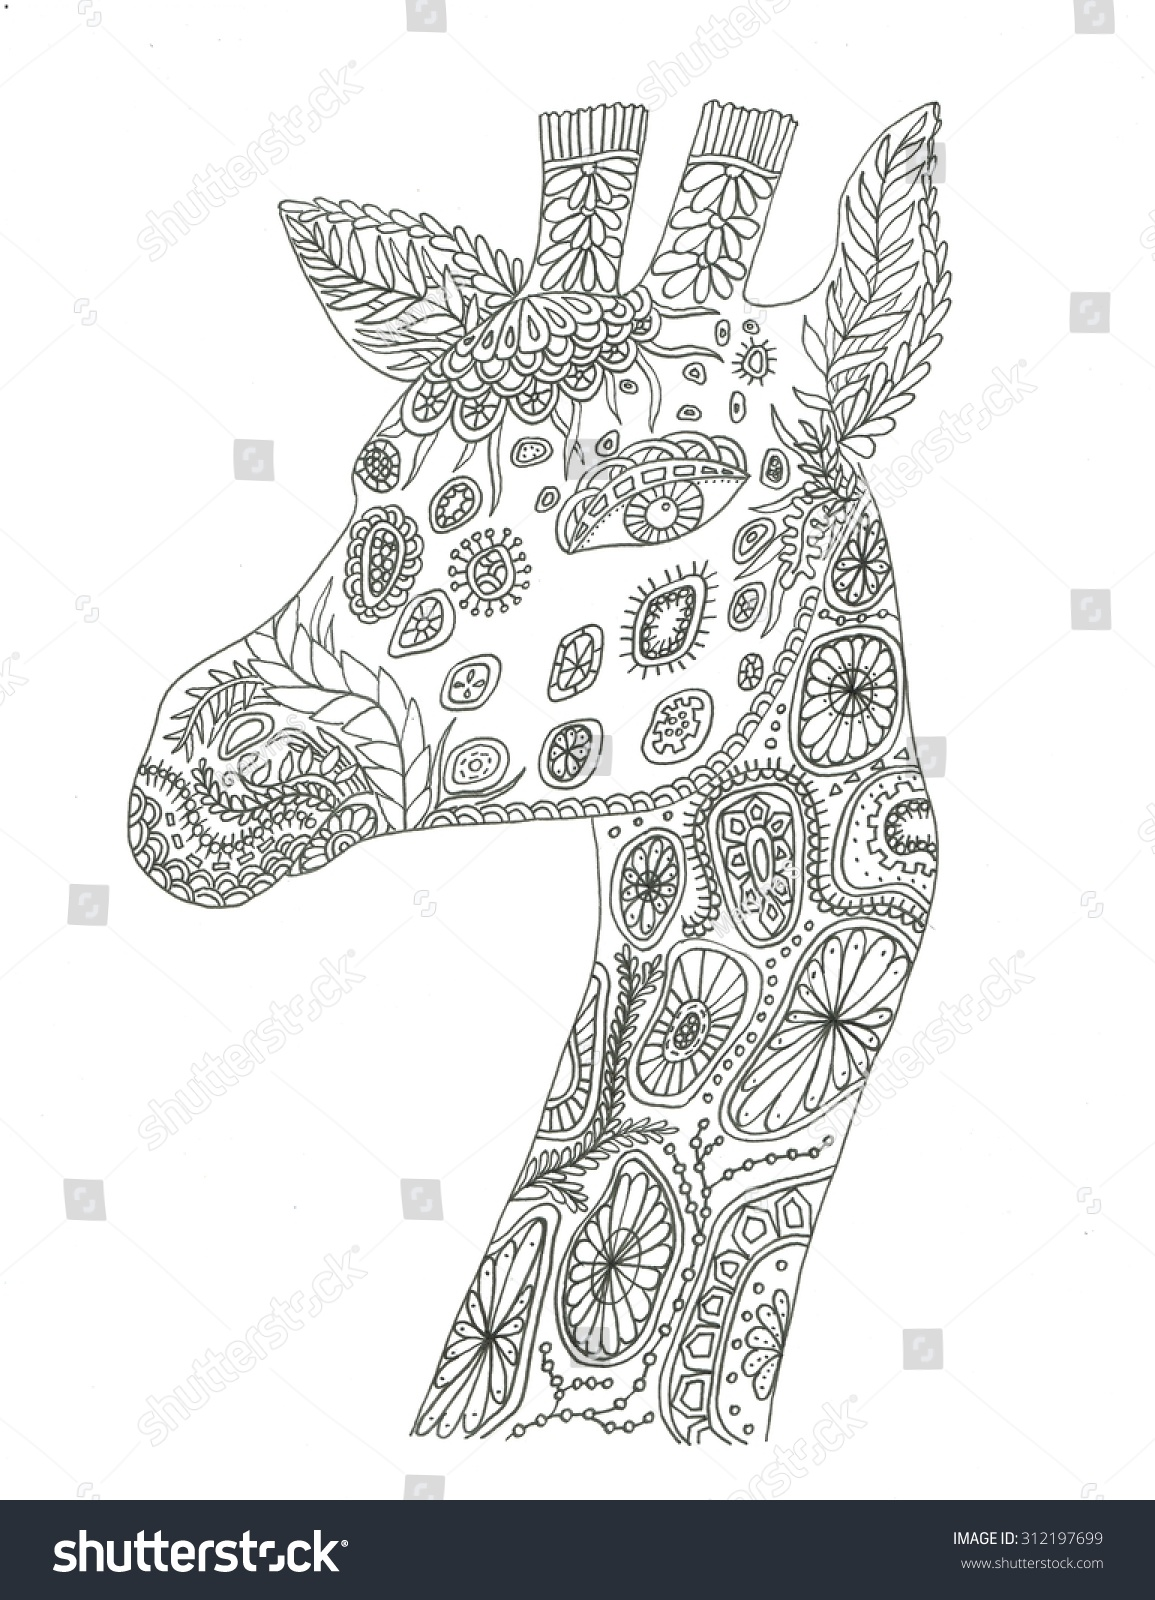 Coloring pages giraffe - Giraffe Portrait Coloring Page